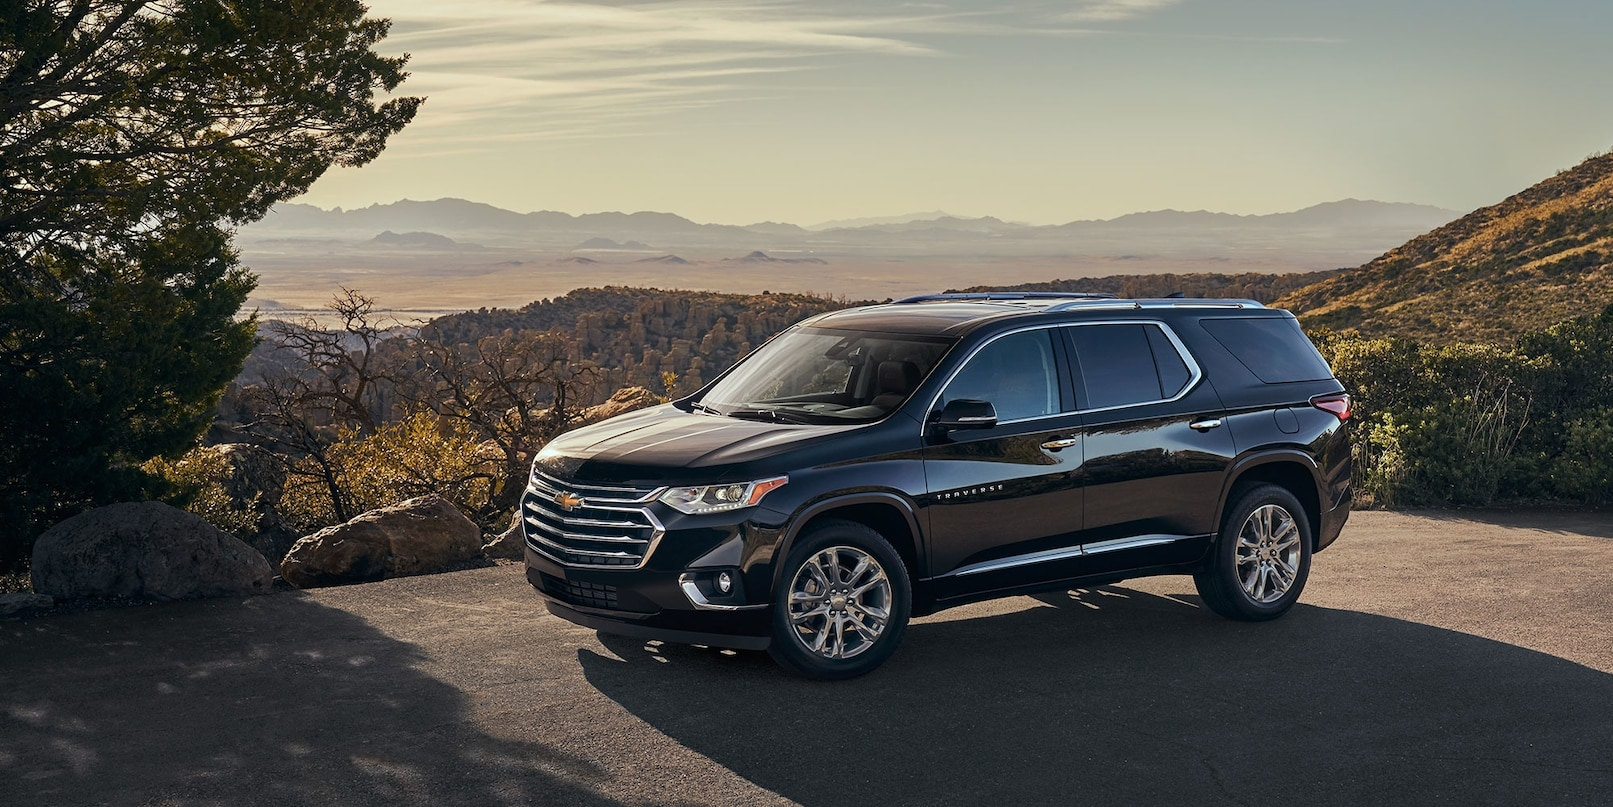 2019 chevy traverse lease deals at muzi chevy serving boston ma. Black Bedroom Furniture Sets. Home Design Ideas